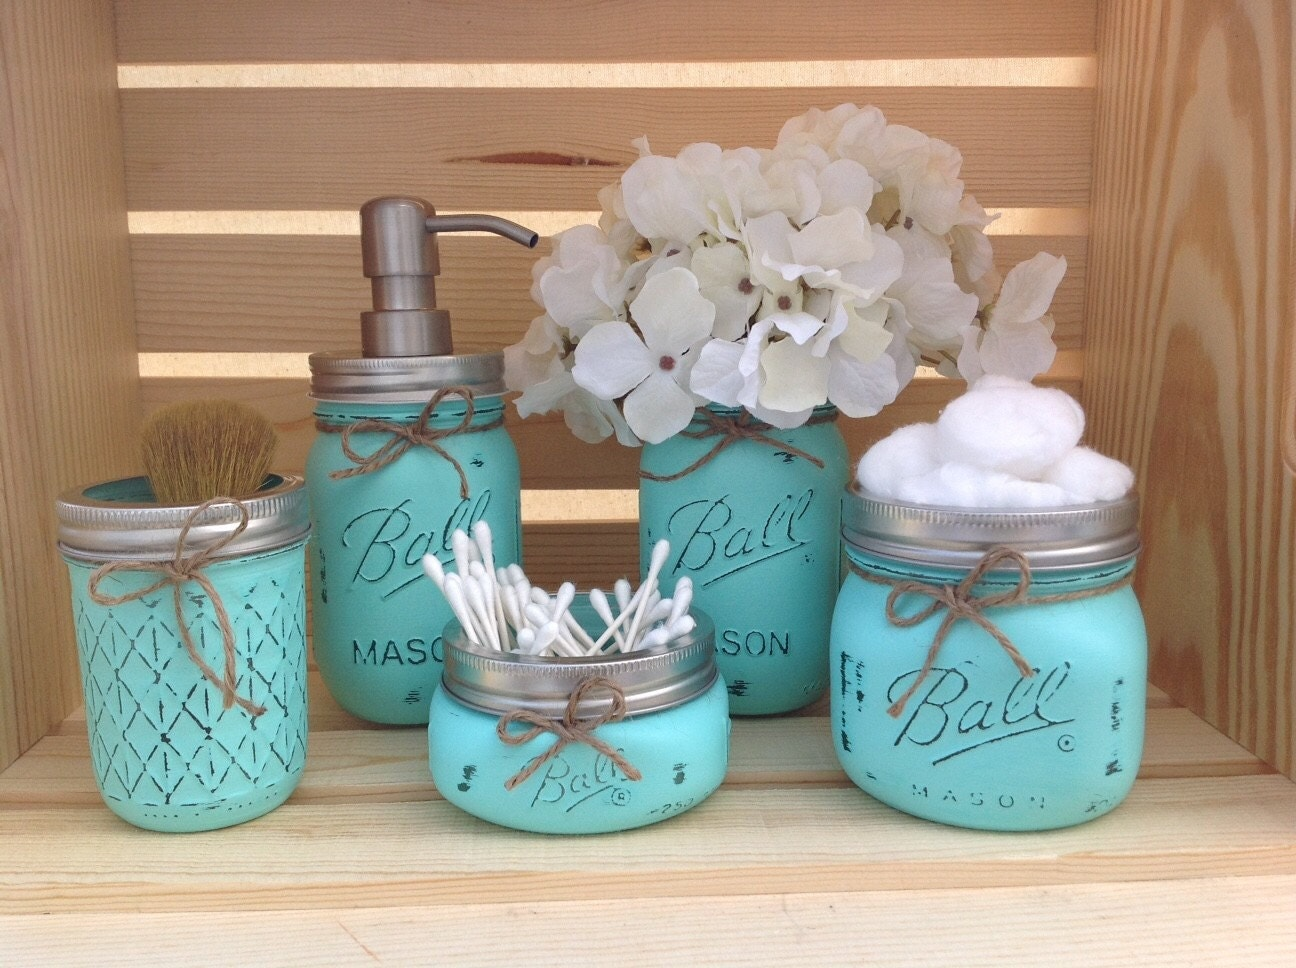 Mason jar bathroom set mason jars bathroom decor bridal by for Bathroom decor mason jars